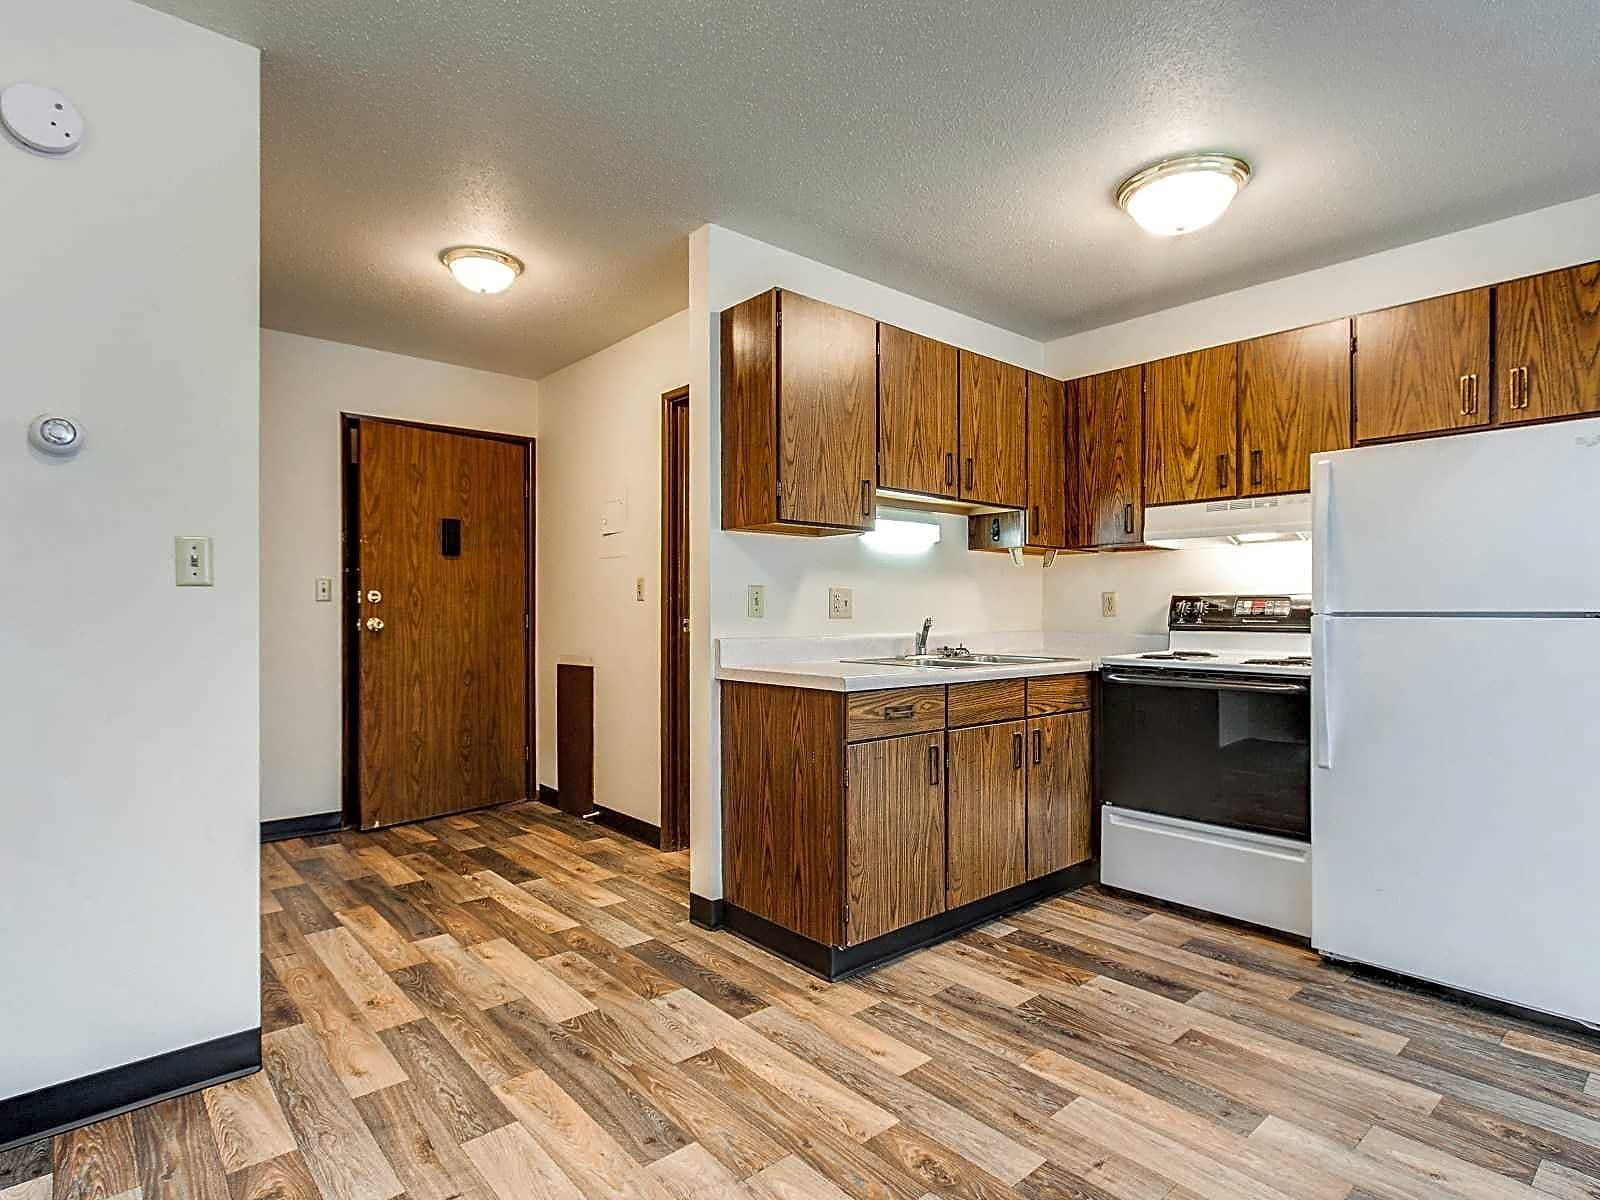 Apartments Near NDSU Summerset Apartments for North Dakota State University Students in Fargo, ND